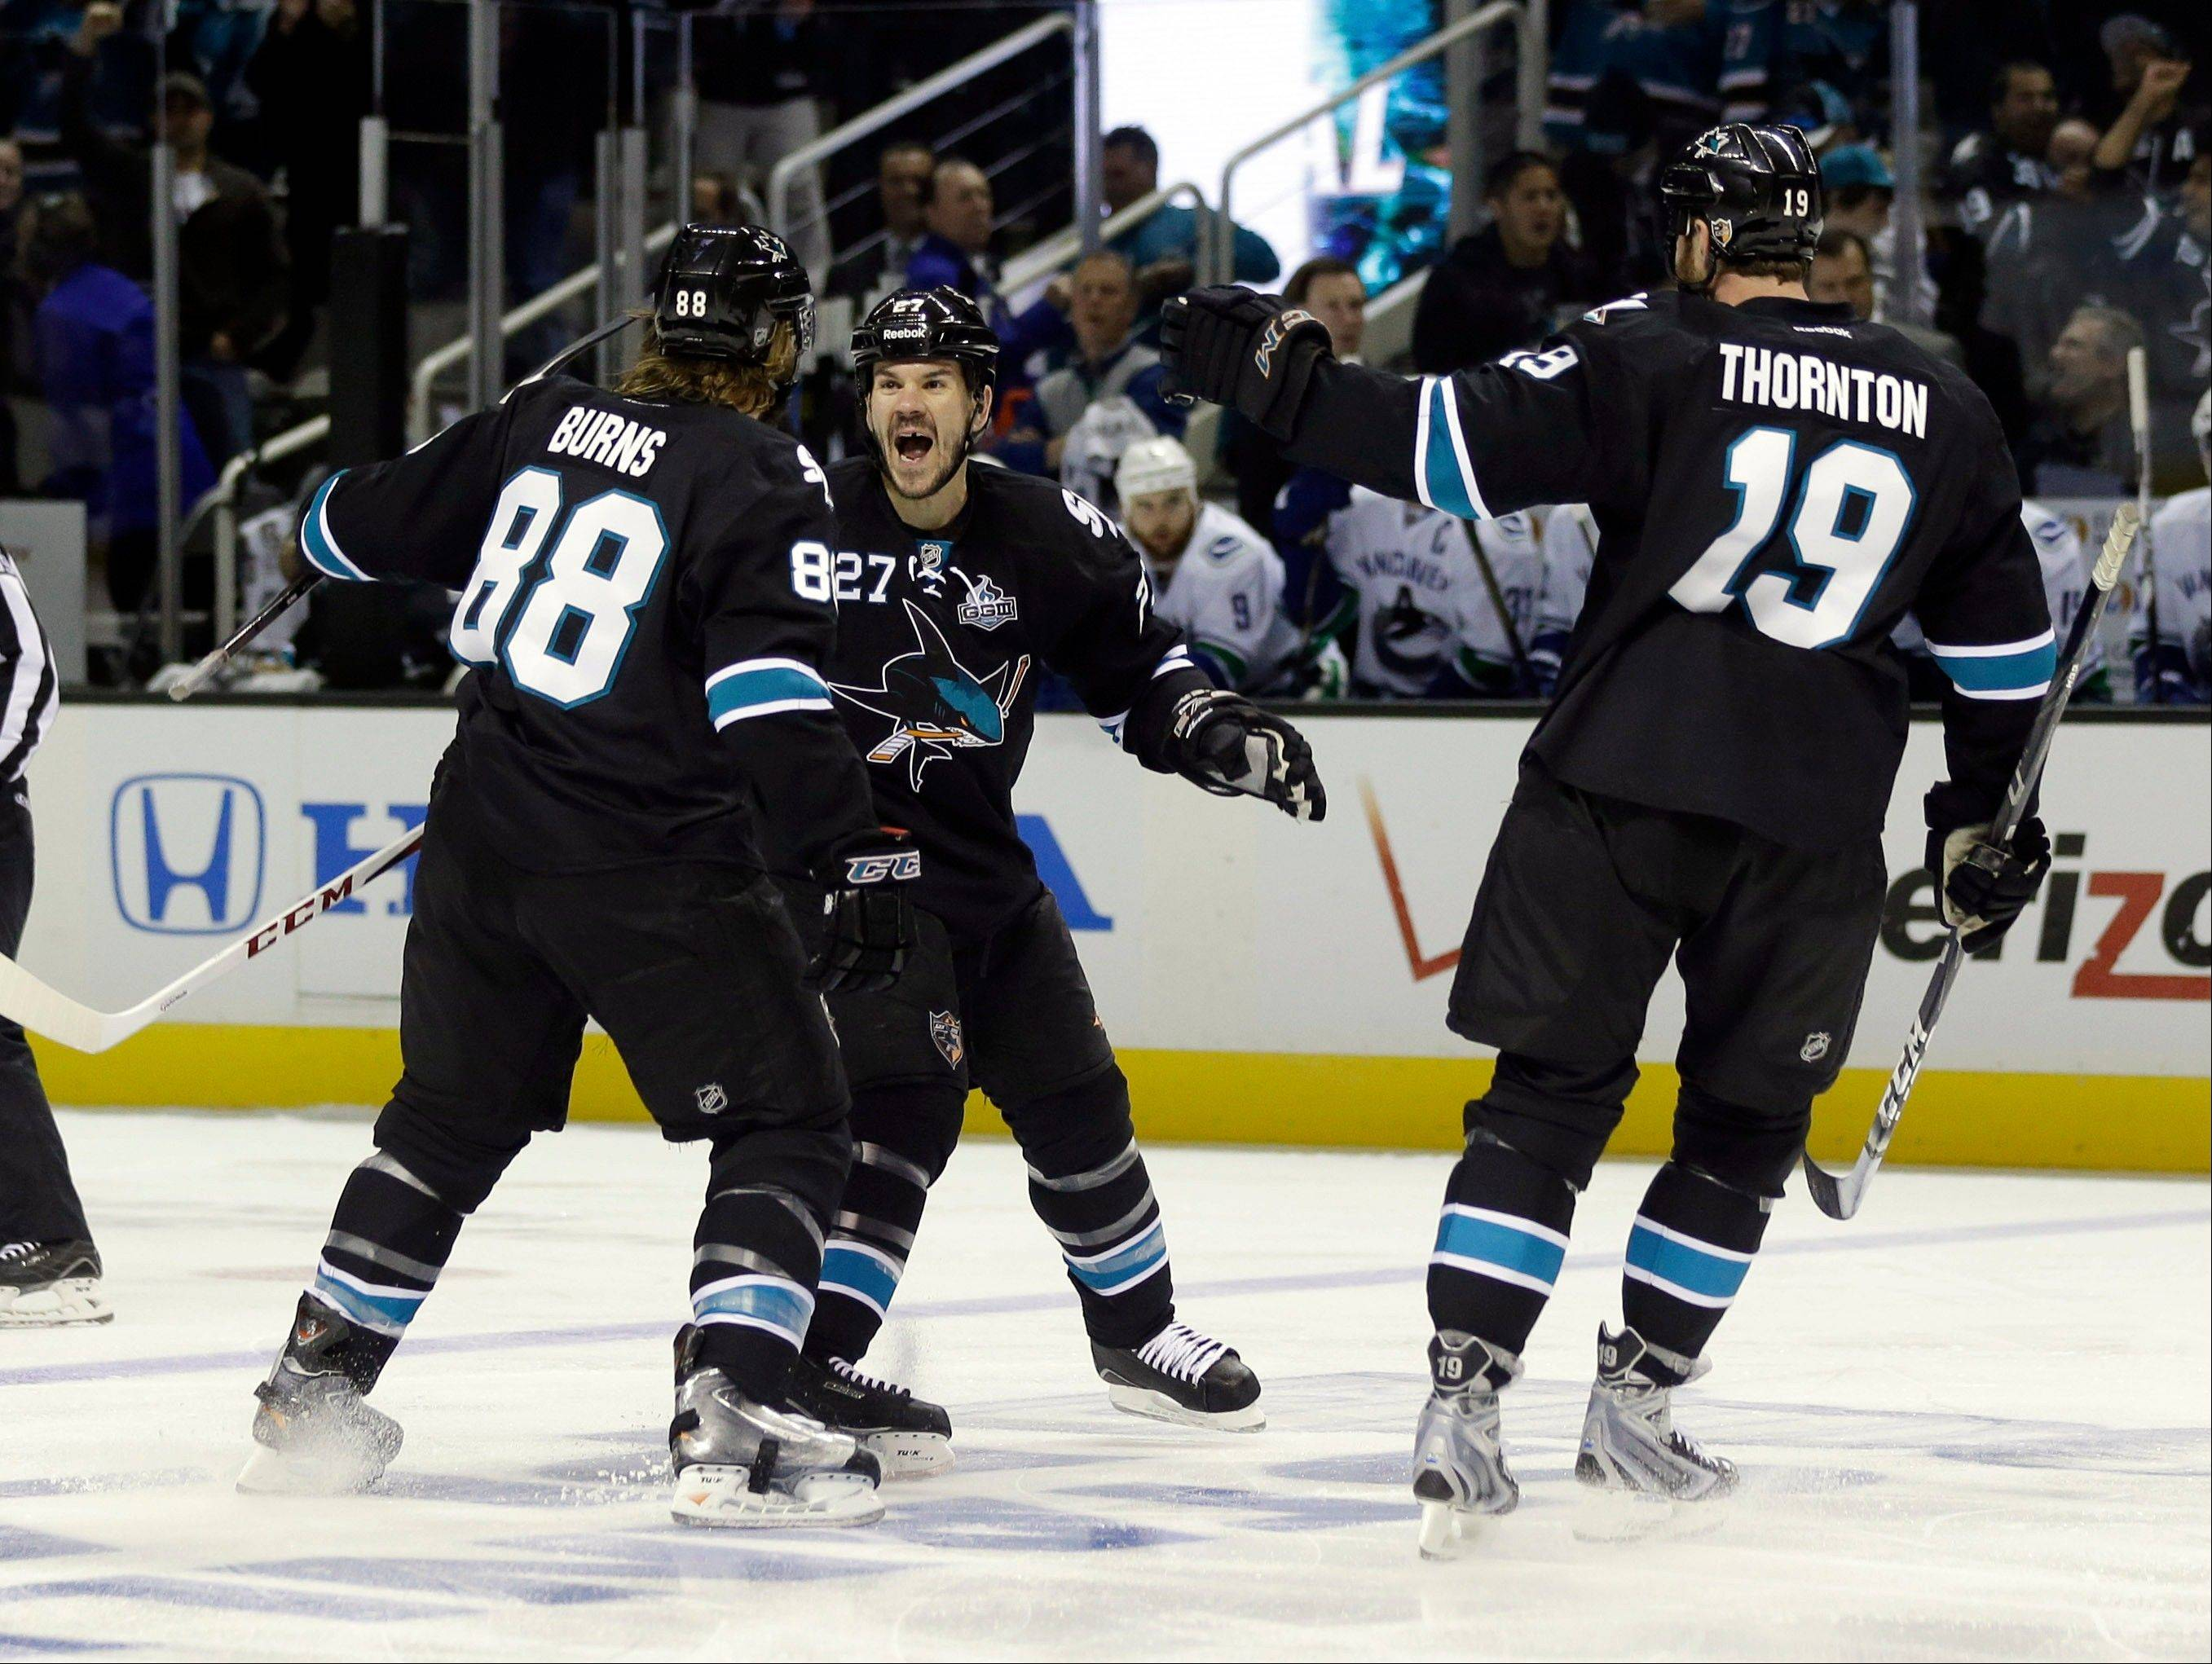 San Jose Sharks defenseman Brent Burns (88) celebrates his goal with teammates Scott Hannan, center, and Joe Thornton (19) during the first period of Game 4 of their first-round NHL hockey Stanley Cup playoff series in San Jose, Calif., Tuesday, May 7, 2013. (AP Photo/Marcio Jose Sanchez)